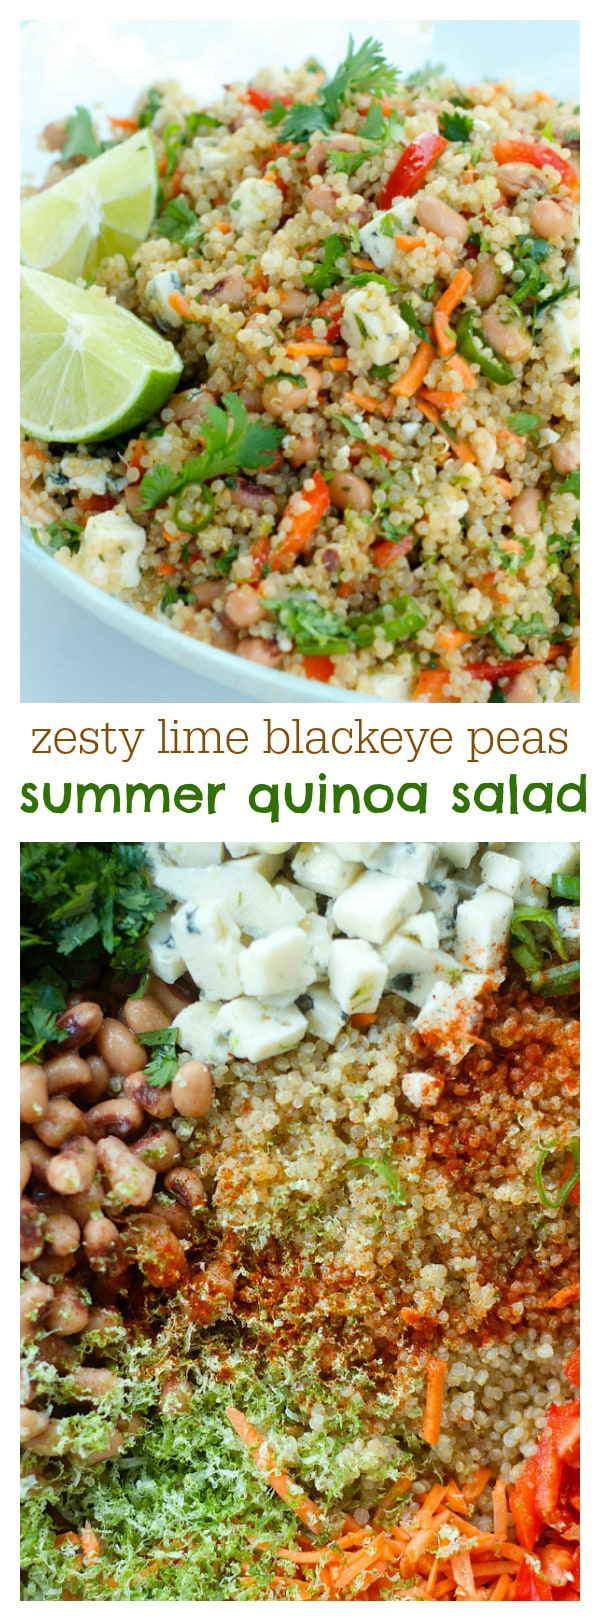 Zesty Lime Blackeye Peas Summer Quinoa Salad